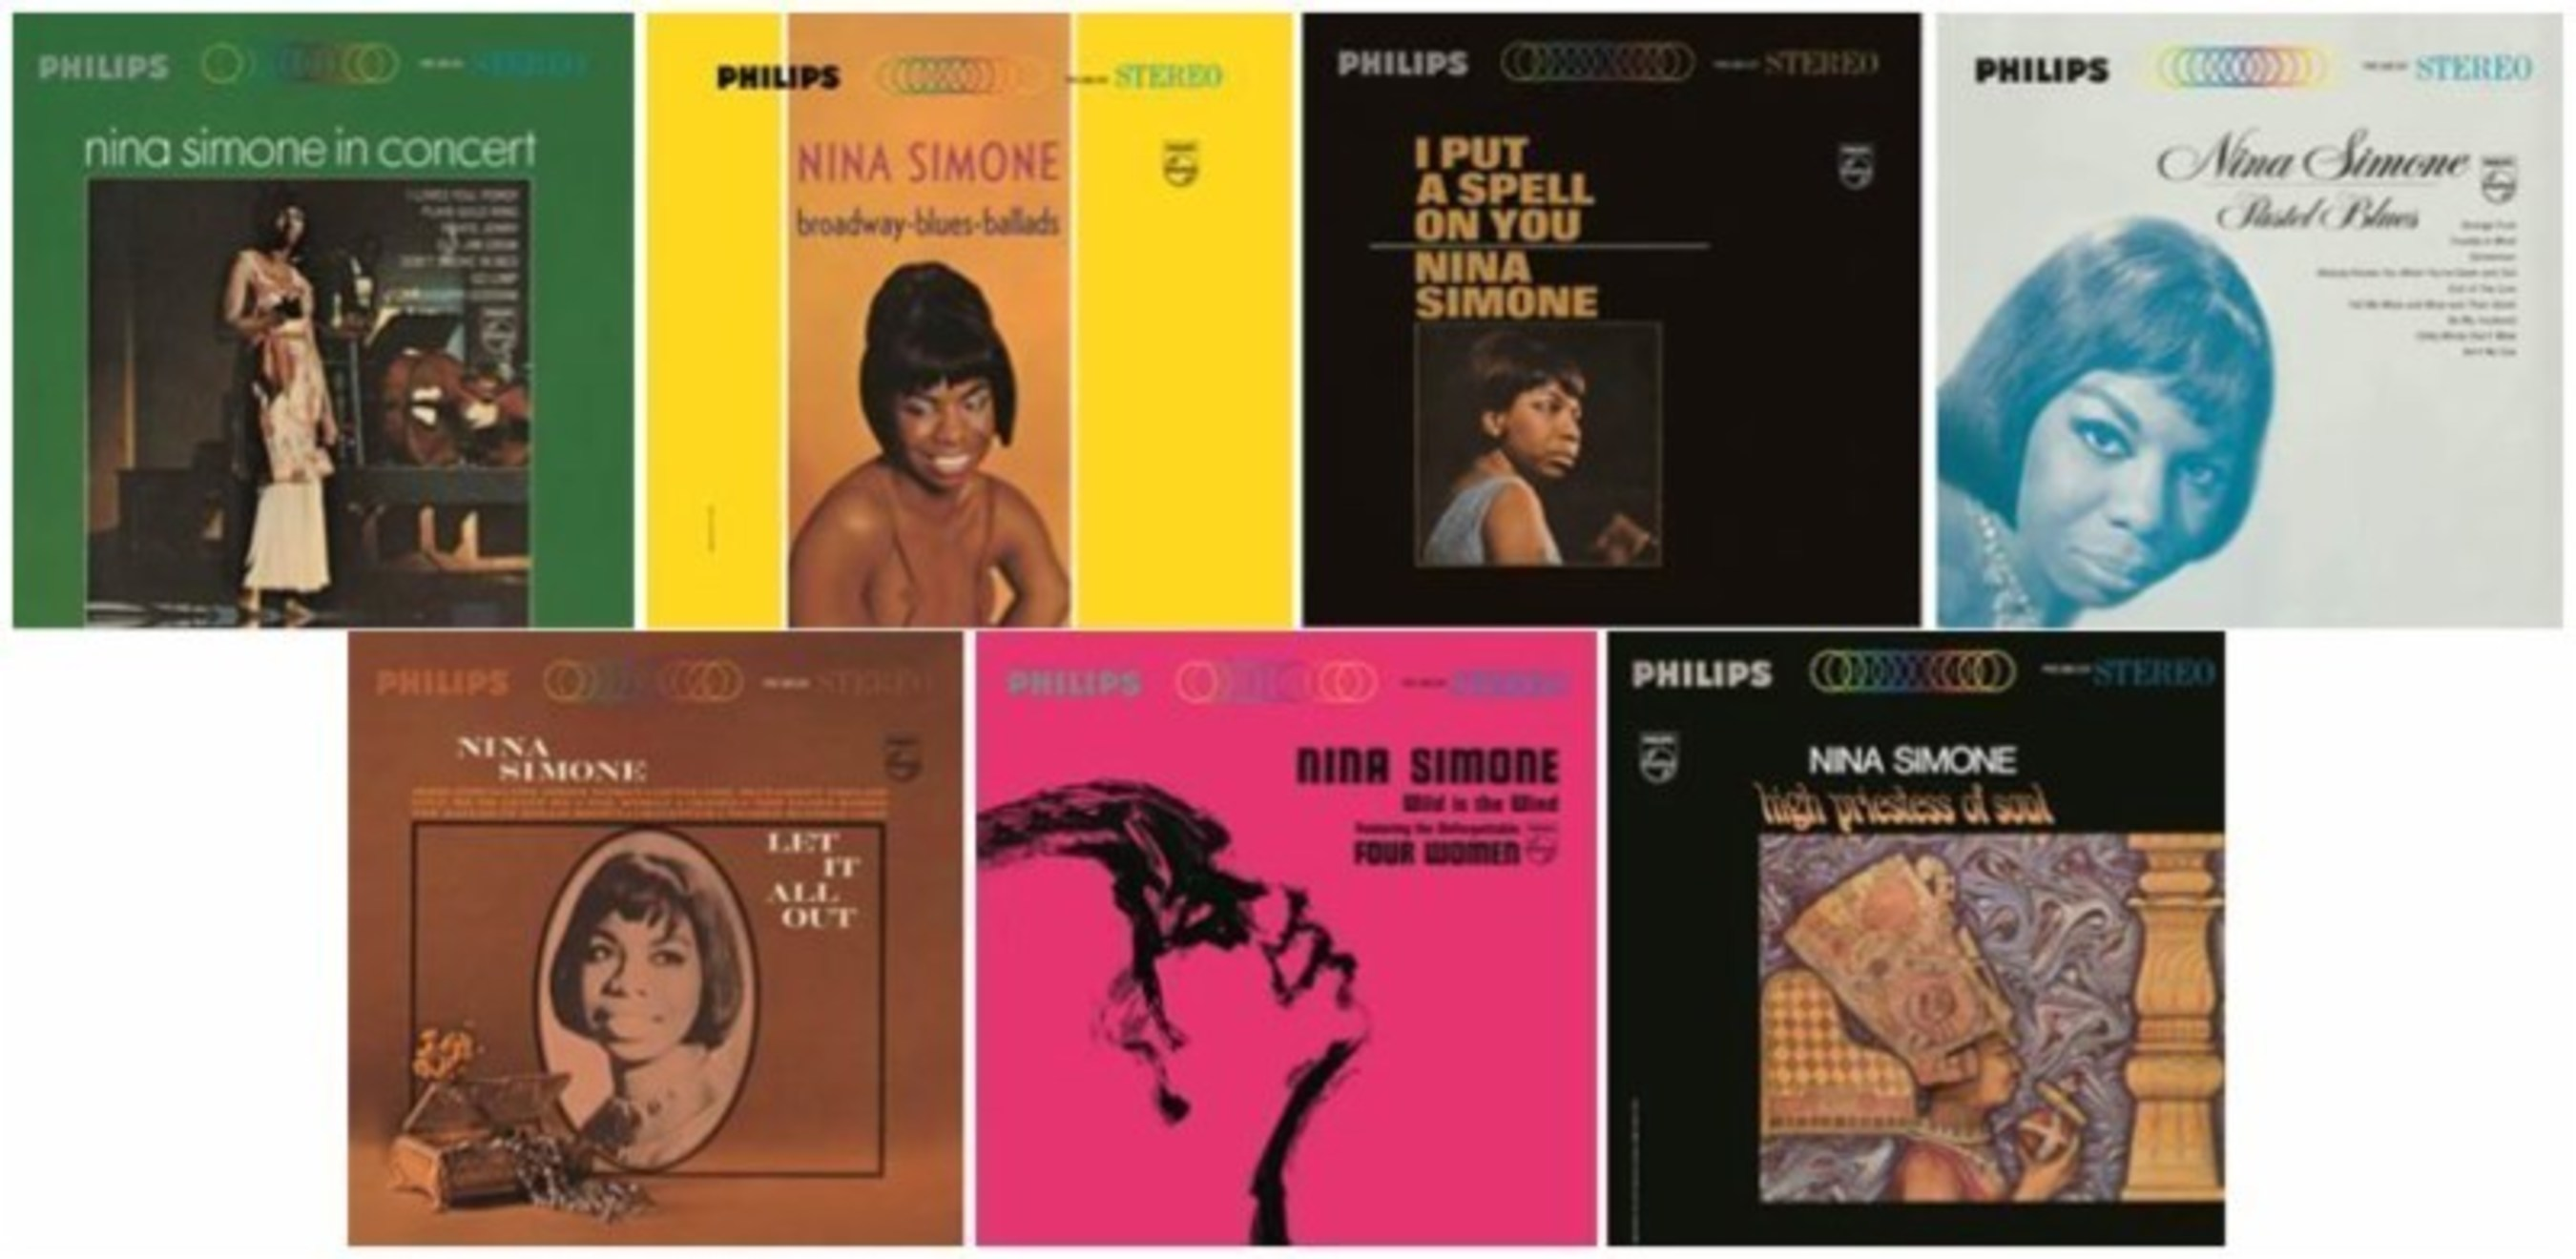 Nina Simone's Historic Philips Years Celebrated with Vinyl Remasters of Seven Classic Albums Including Nina Simone in Concert, Wild is the Wind, High Priestess of Soul